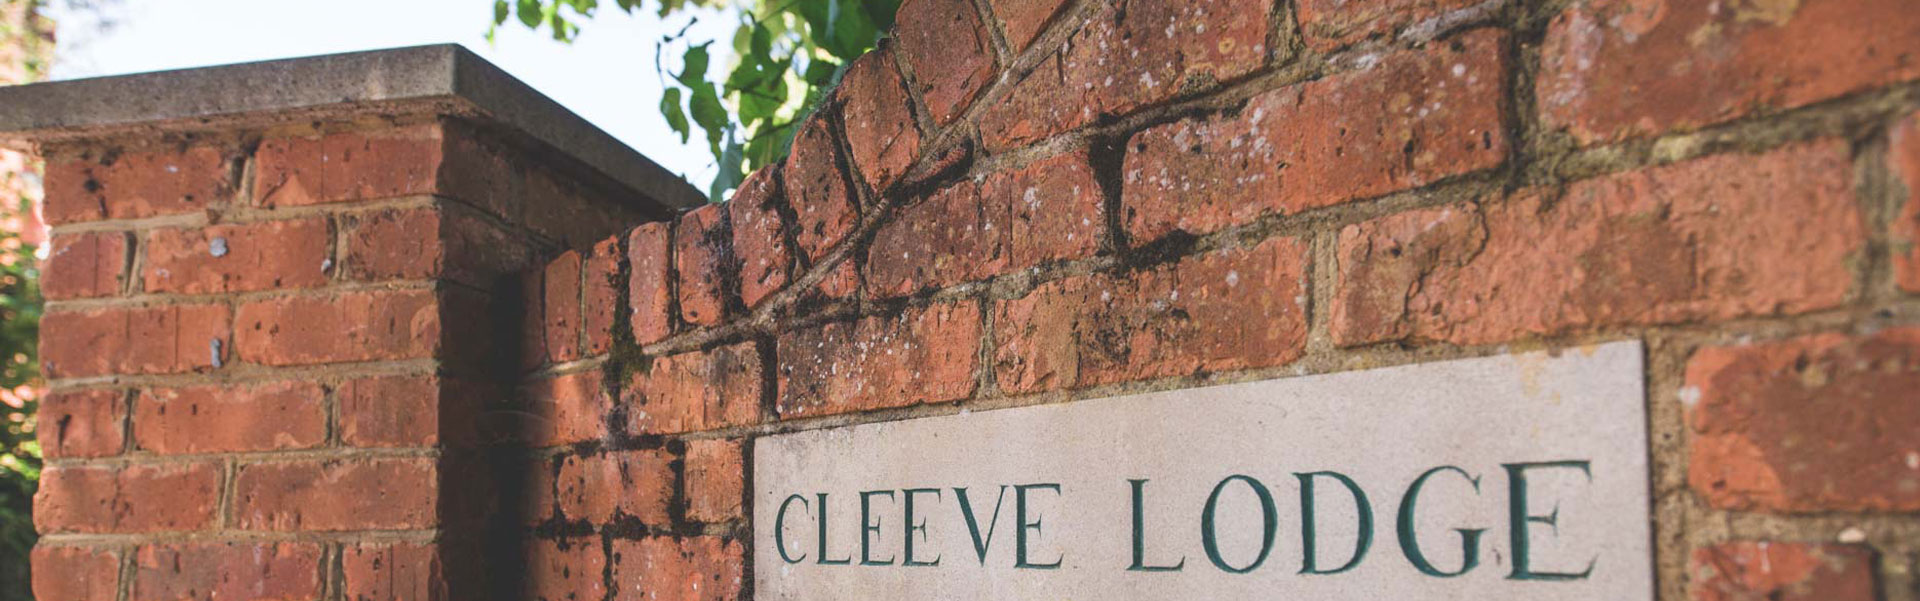 Cleeve Lodge | Front Sign